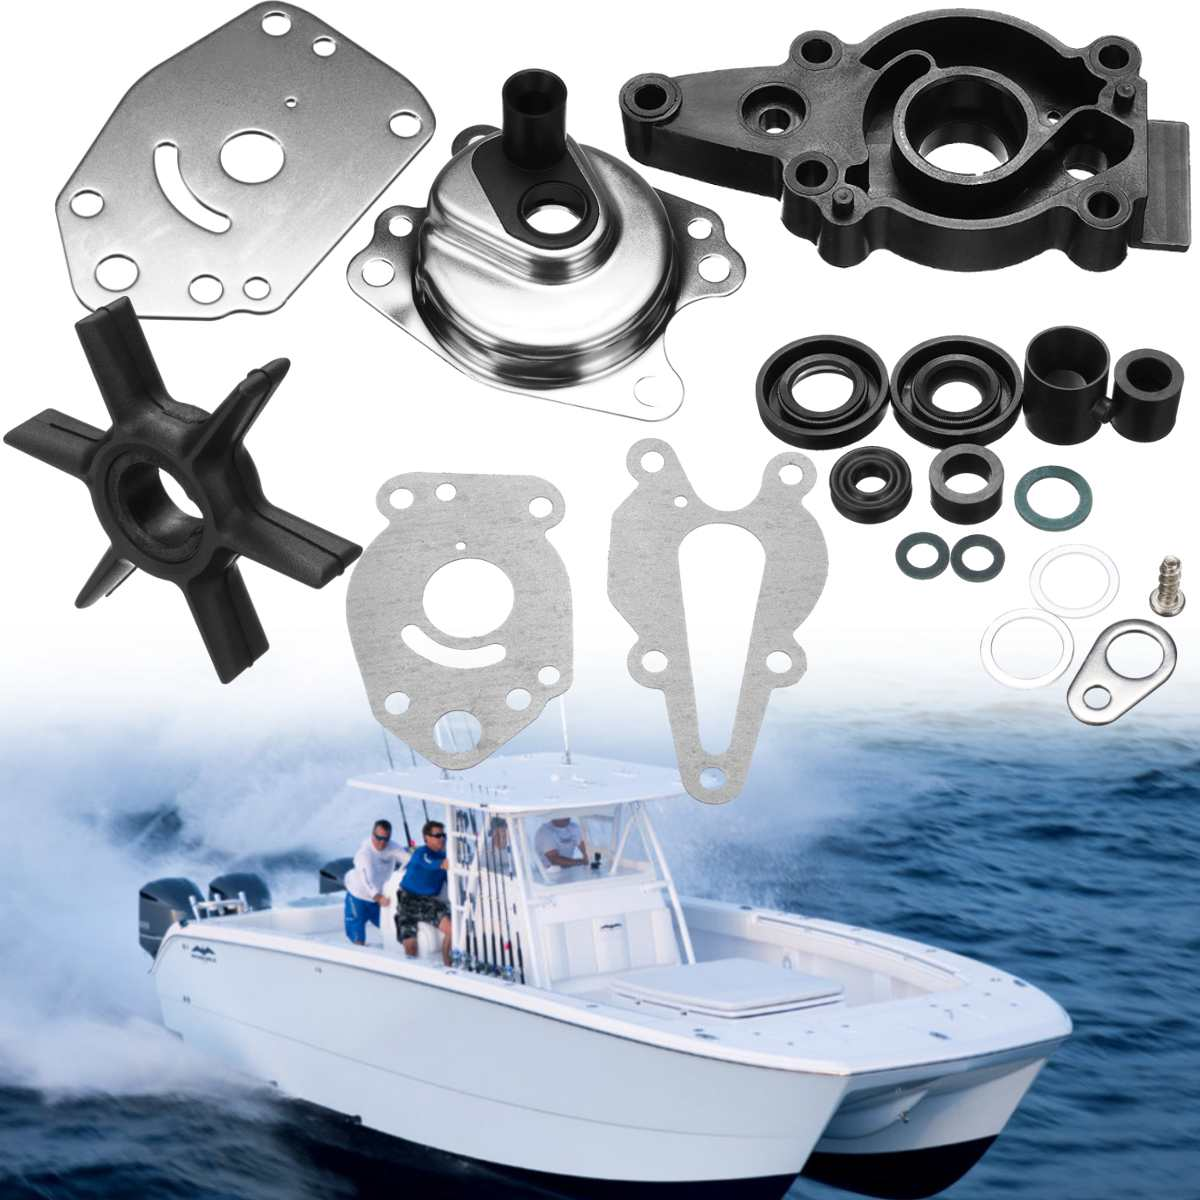 For Mercury 6/8/9.9/15HP 46-42089A5 Marine Boat Water Pump Impeller Repair Kit 6 Blades Boat Parts & Accessories Tool Parts